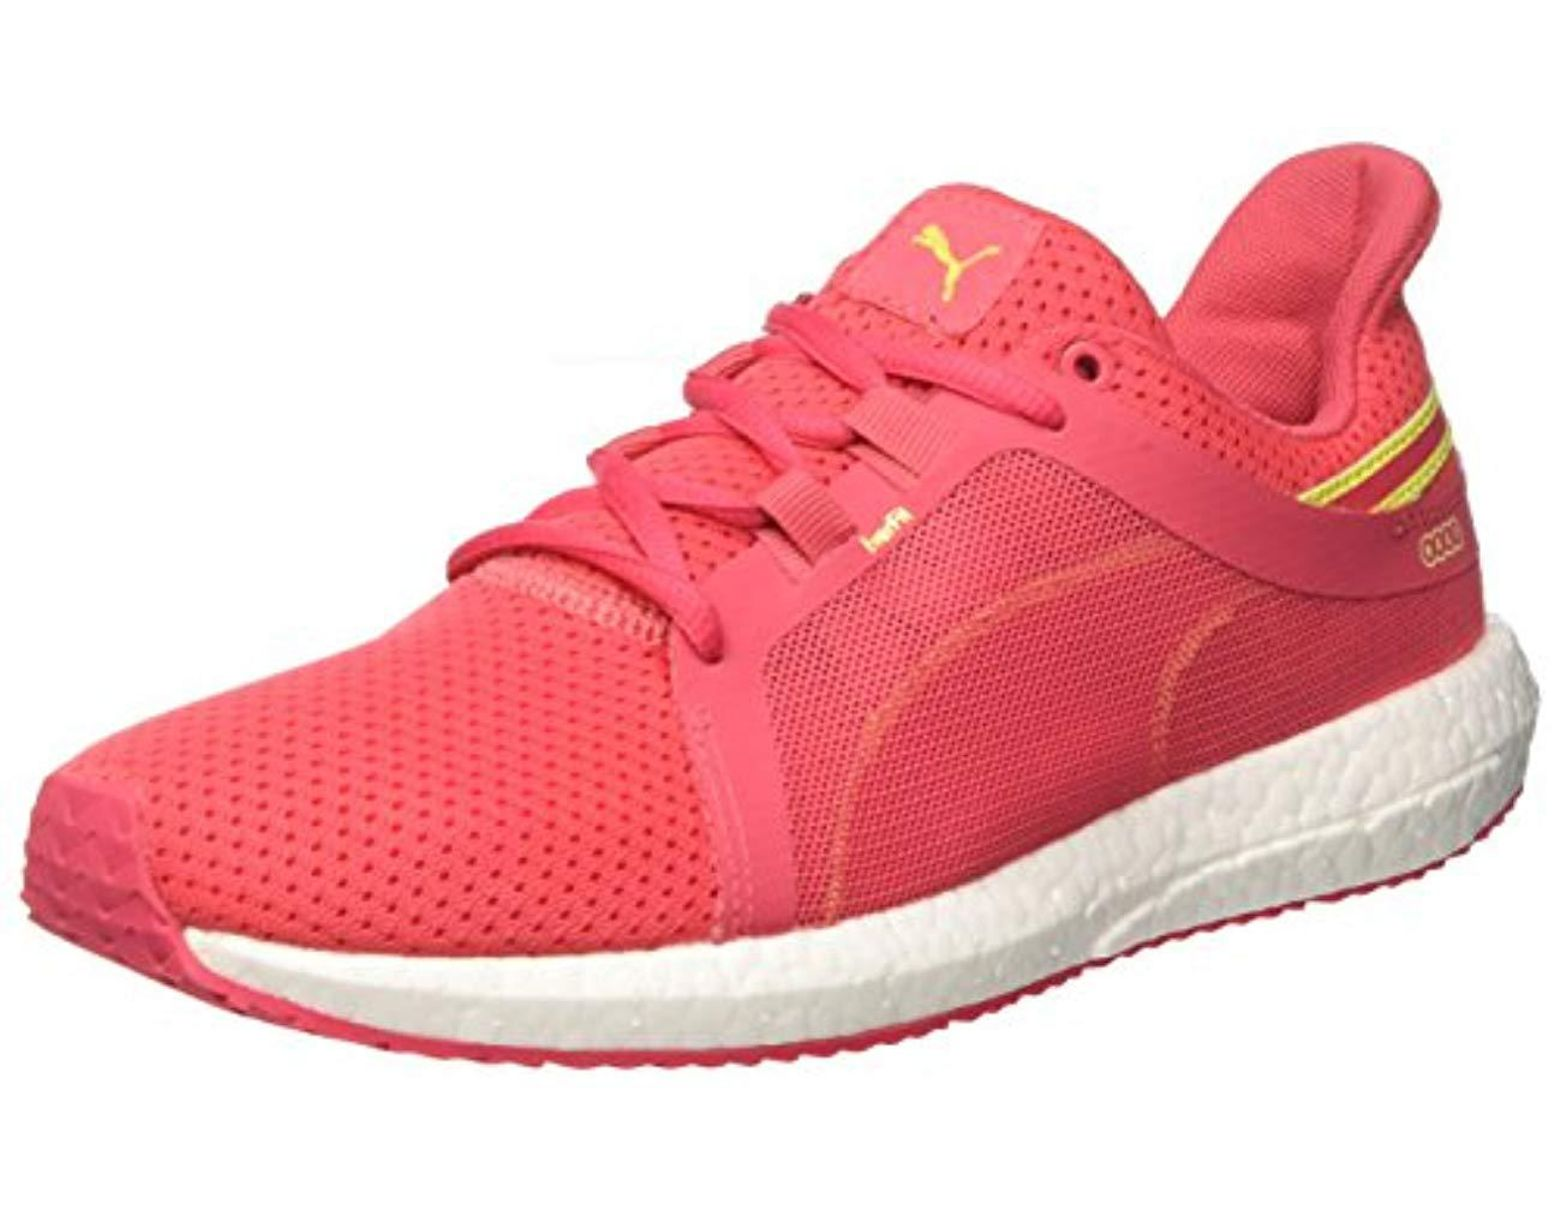 PUMA Mega Nrgy Turbo 2 Wns Cross Trainers in Pink Save 29